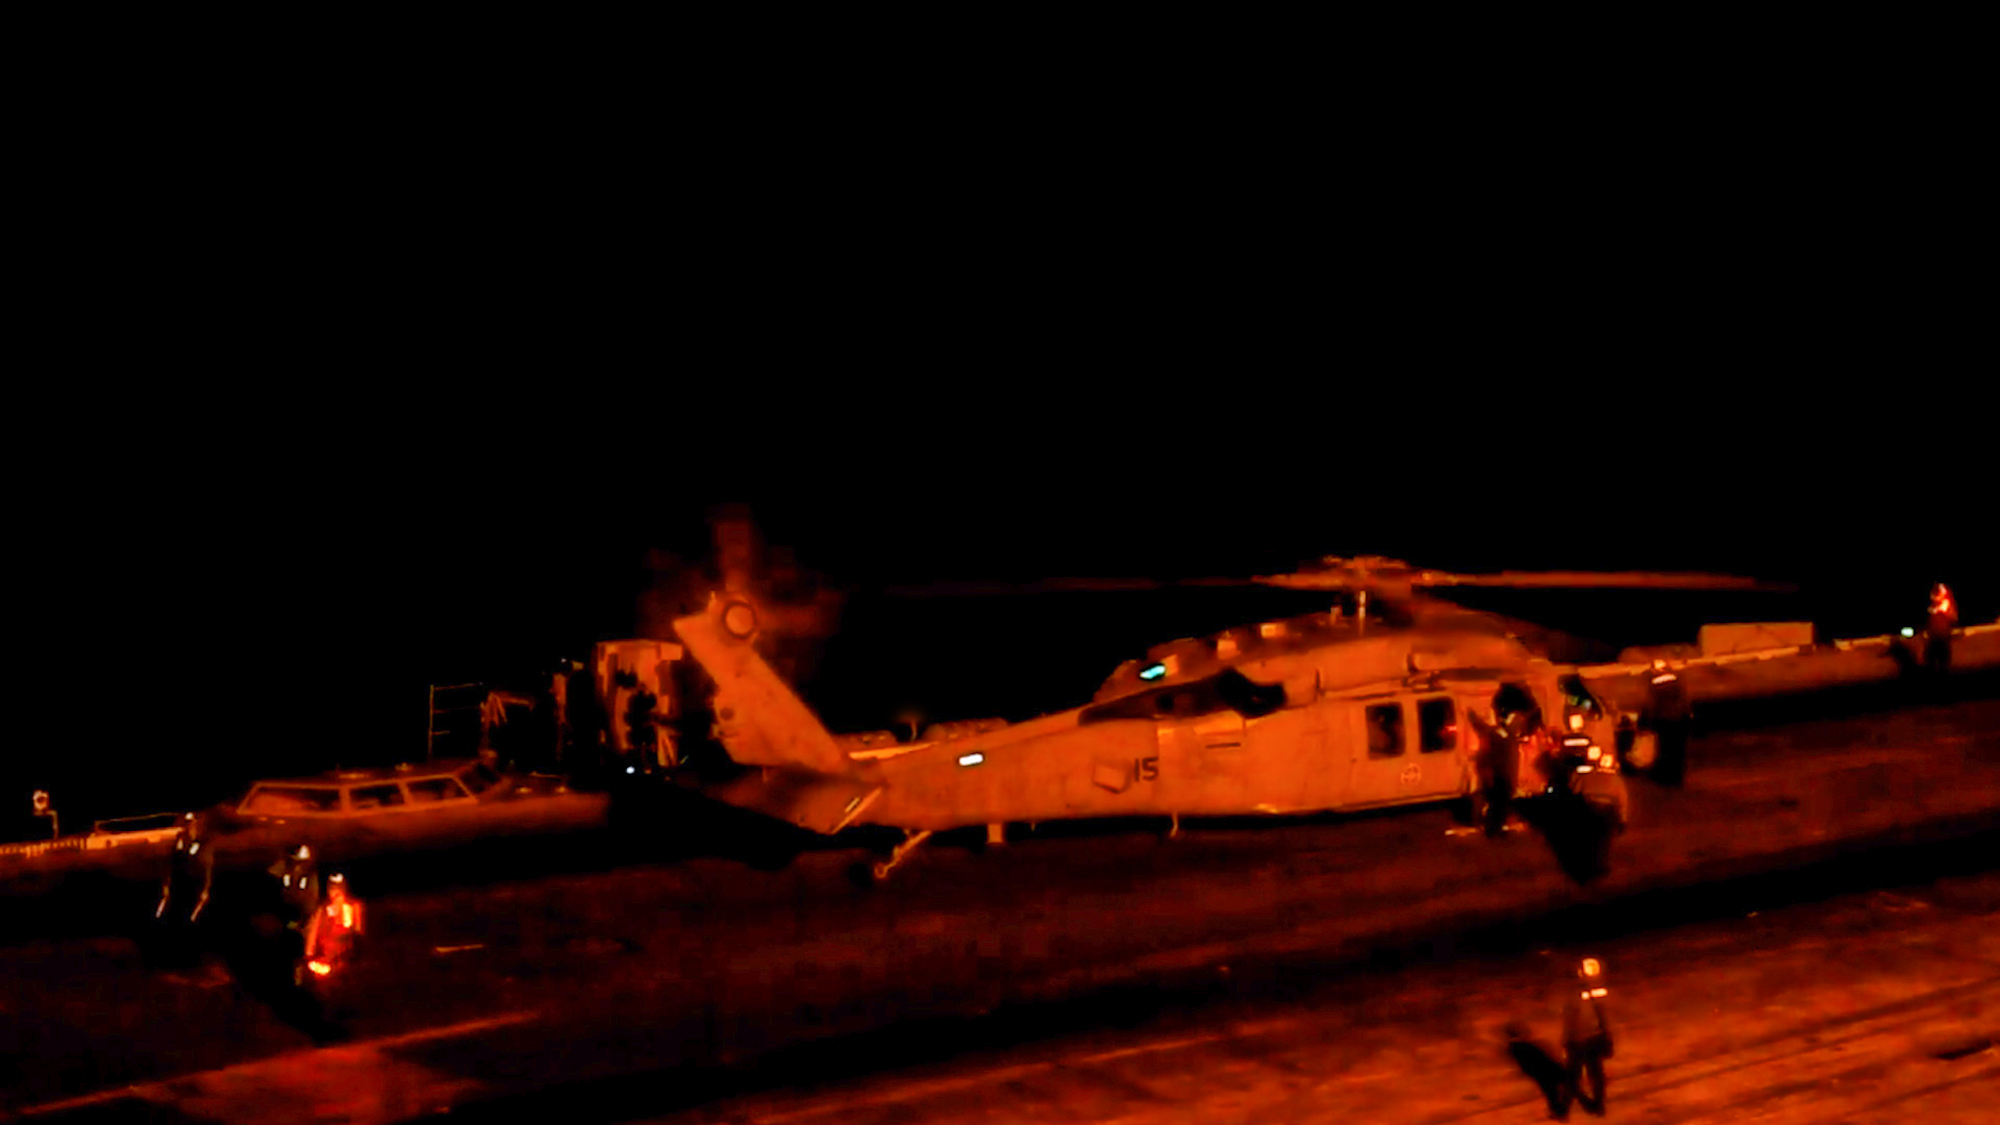 VIDEO: Dark Ops: US Carrier's Nighttime Air-Strike Drills Send A Warning To China